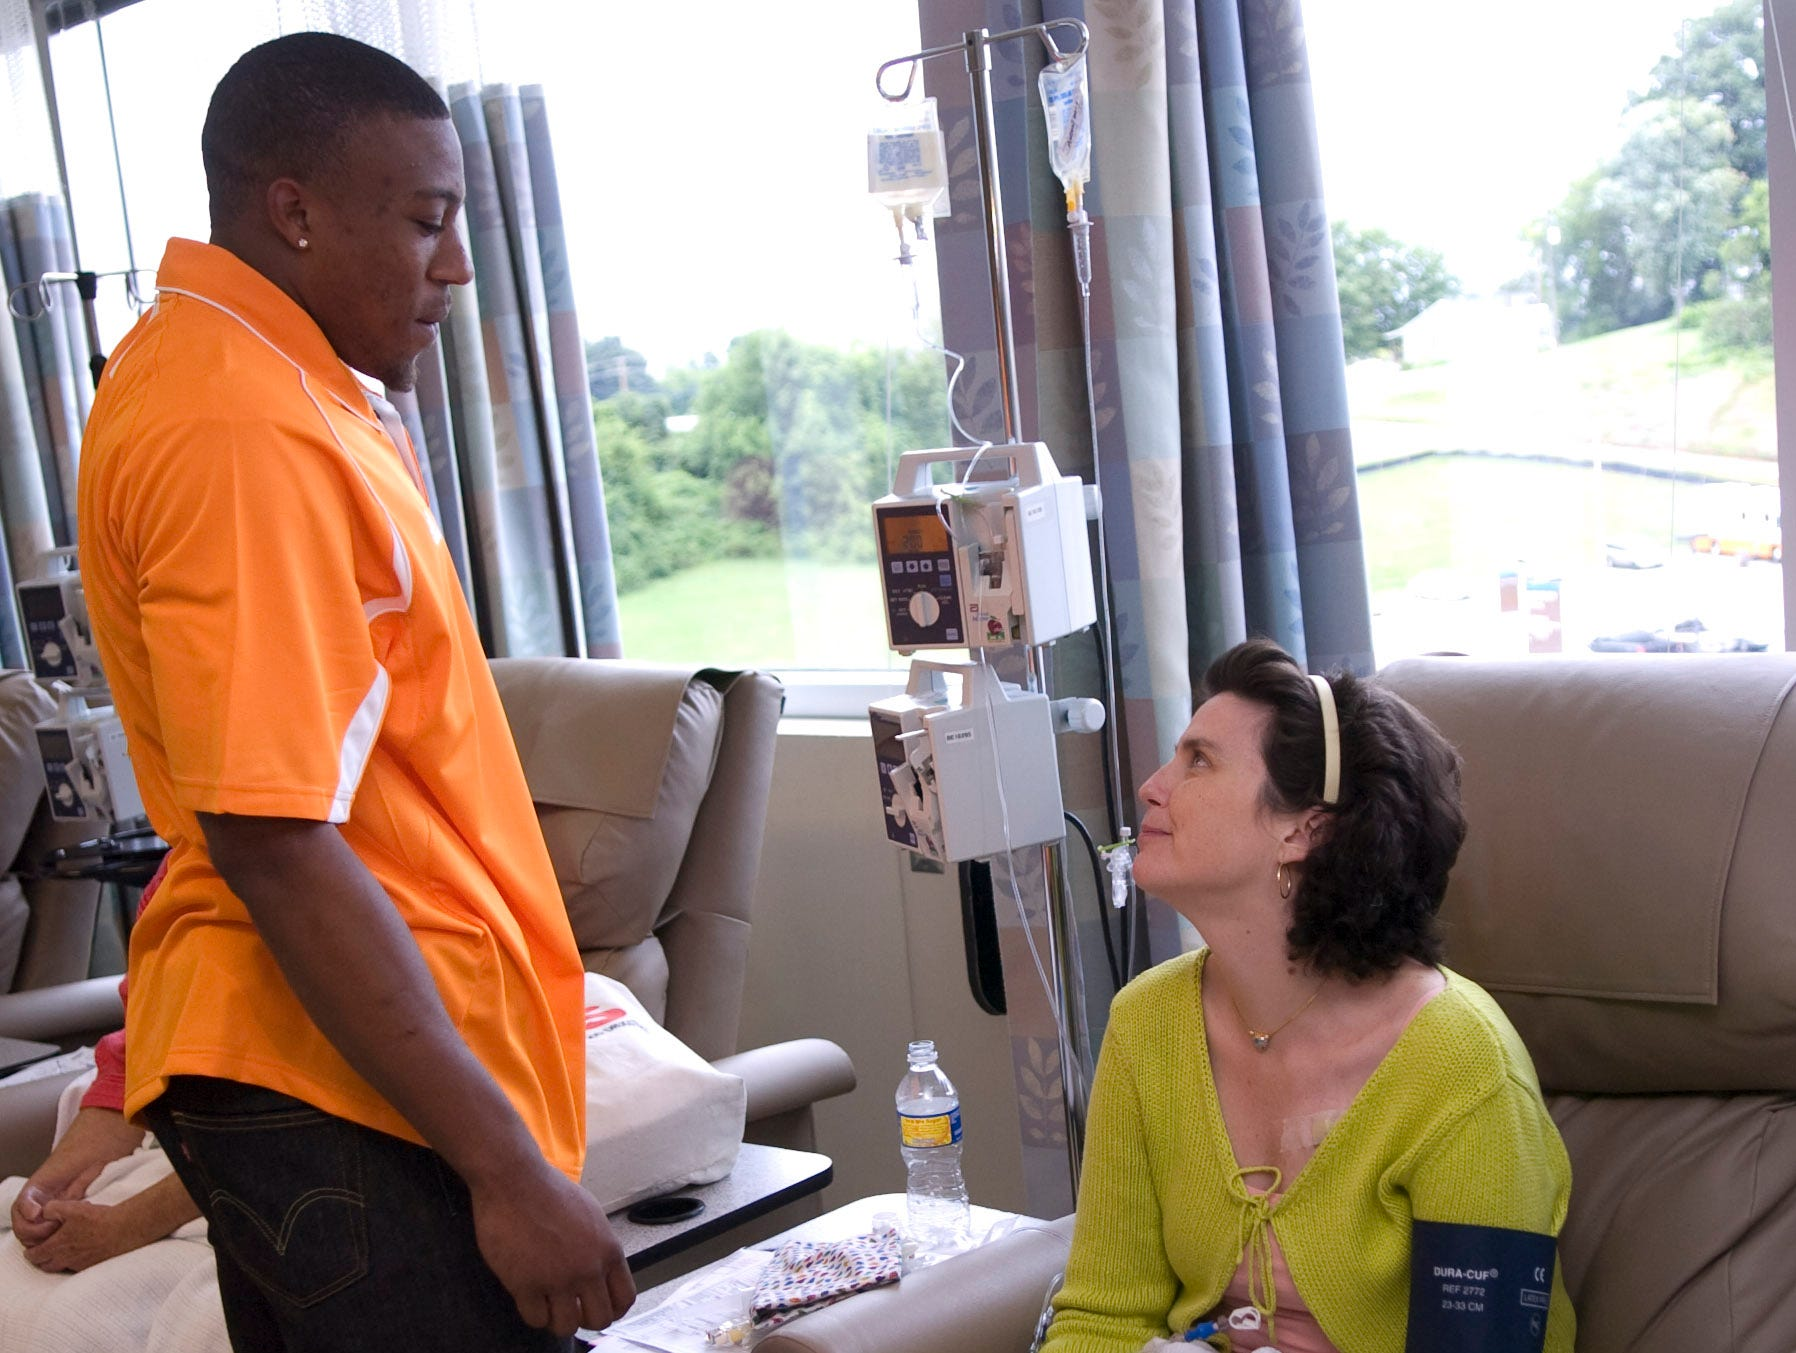 UT football player Eric Berry talks with cancer patient Deborah Rhatigan. Several members of the football team visited patients at the UT Medical Center Cancer Institute on Wednesday.